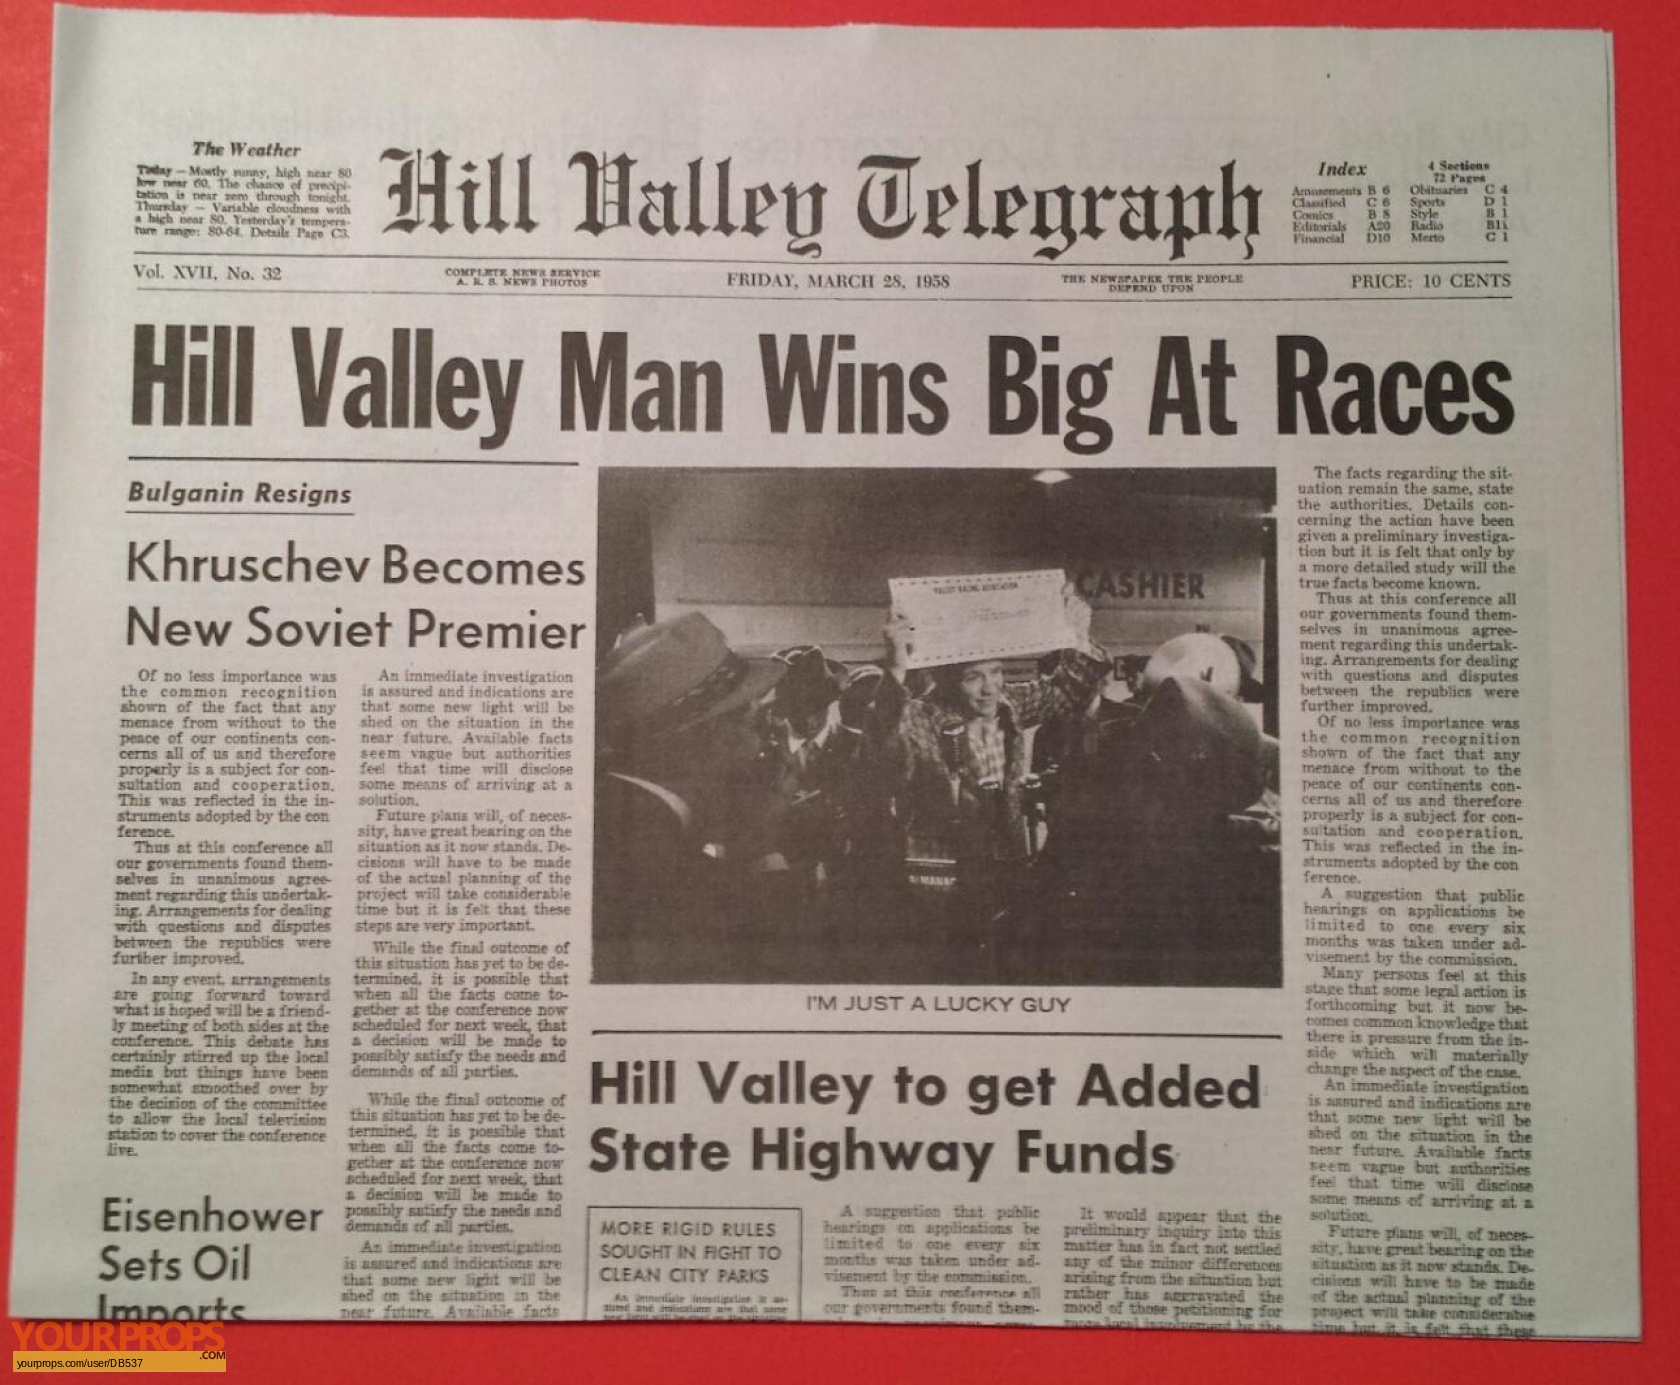 Back To The Future 2 'HV Man Wins Big at Races' Newspaper (v 2